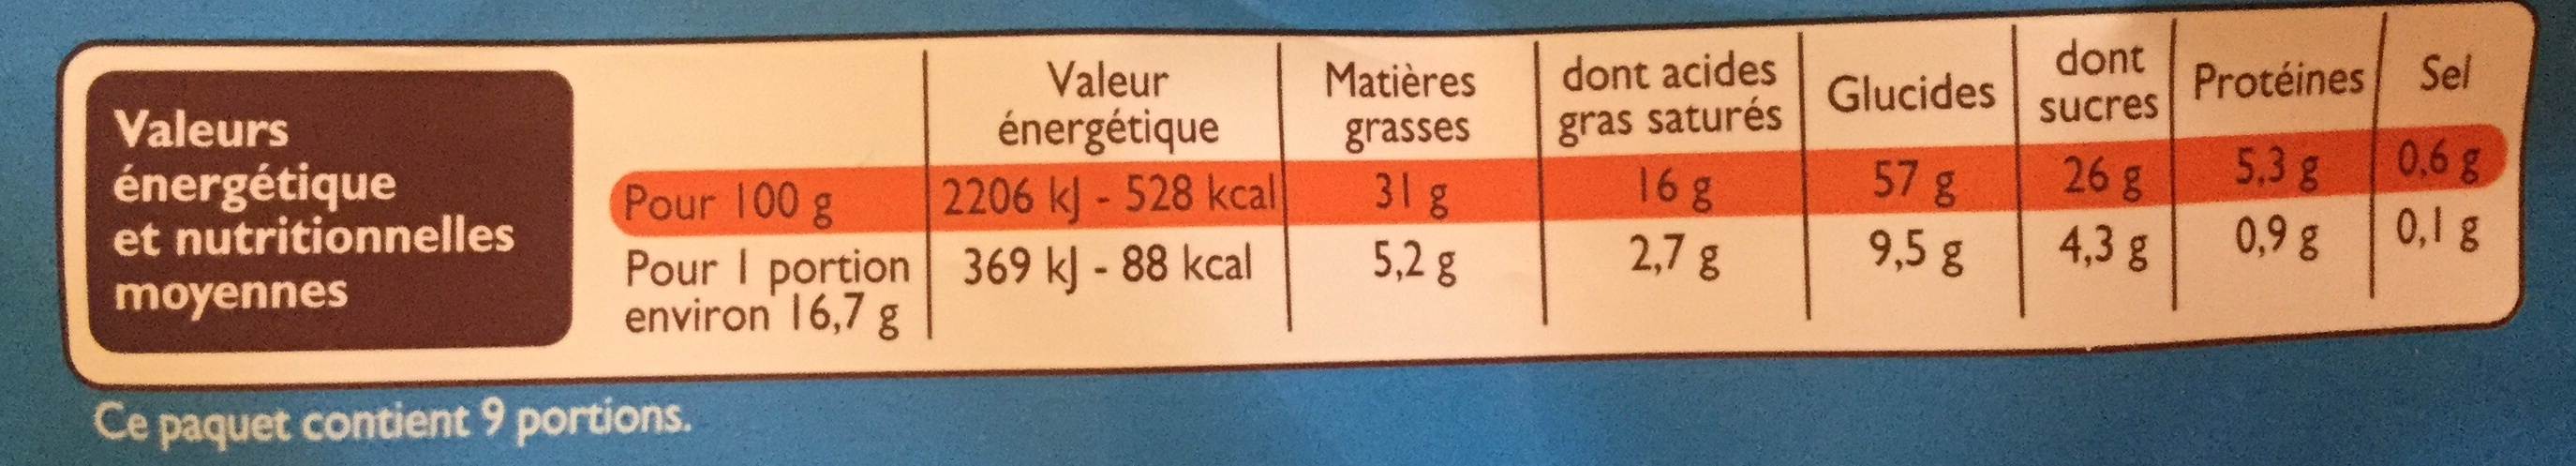 Sprits chocolat au lait - Nutrition facts - fr